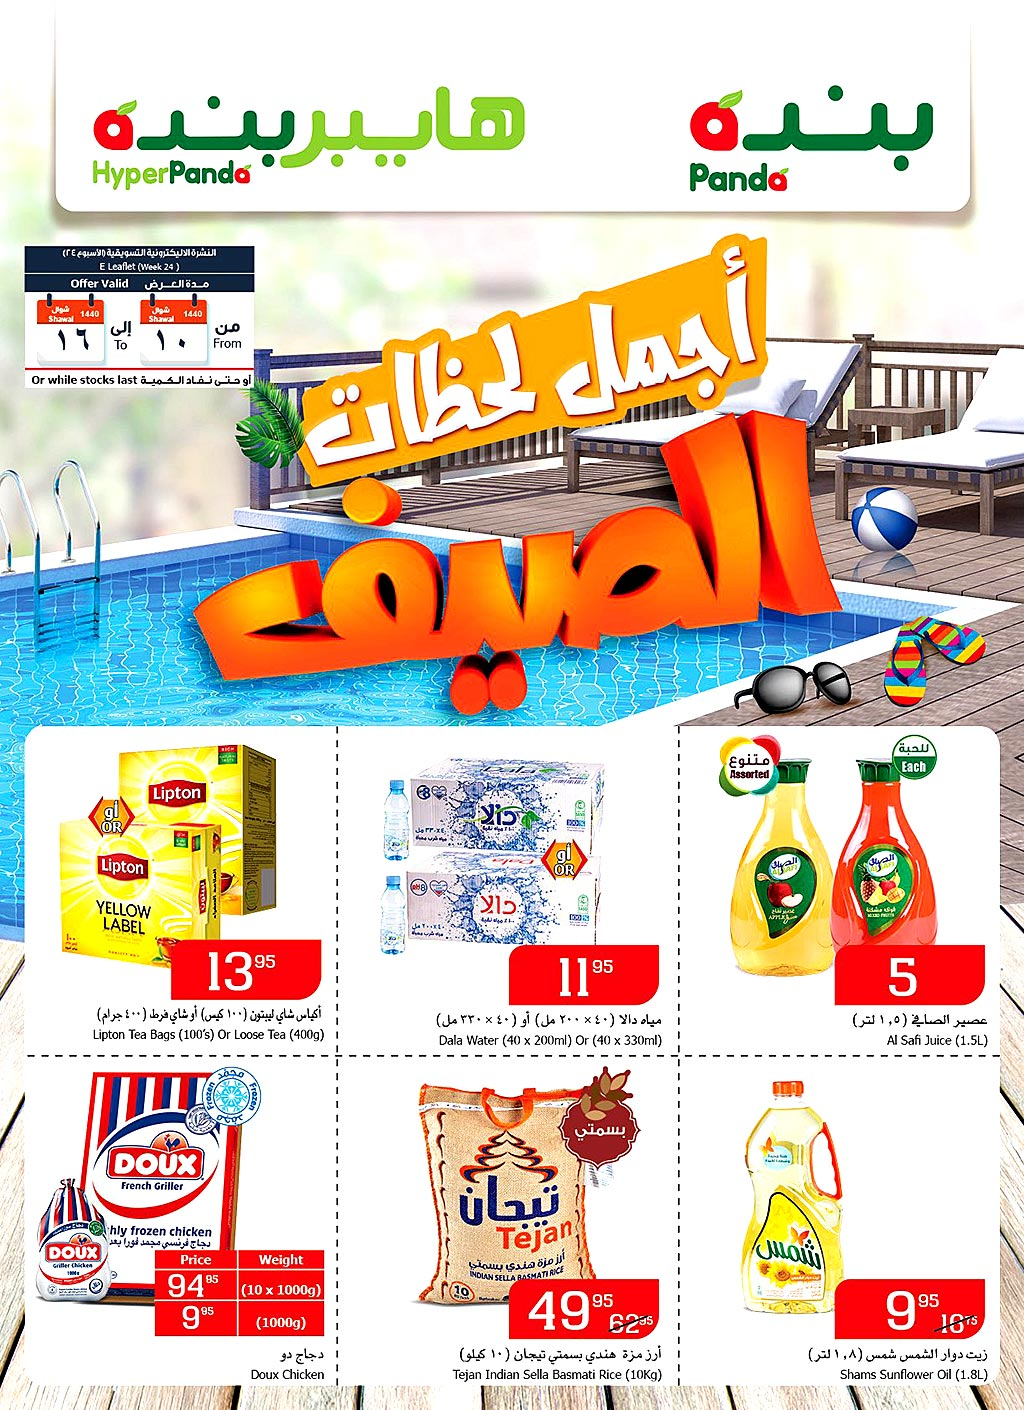 hyperpanda offers from 13june to 19june 2019 page number 1 عروض هايبر بنده من 13 يونيو حتى 19 يونيو 2019 صفحة رقم 1